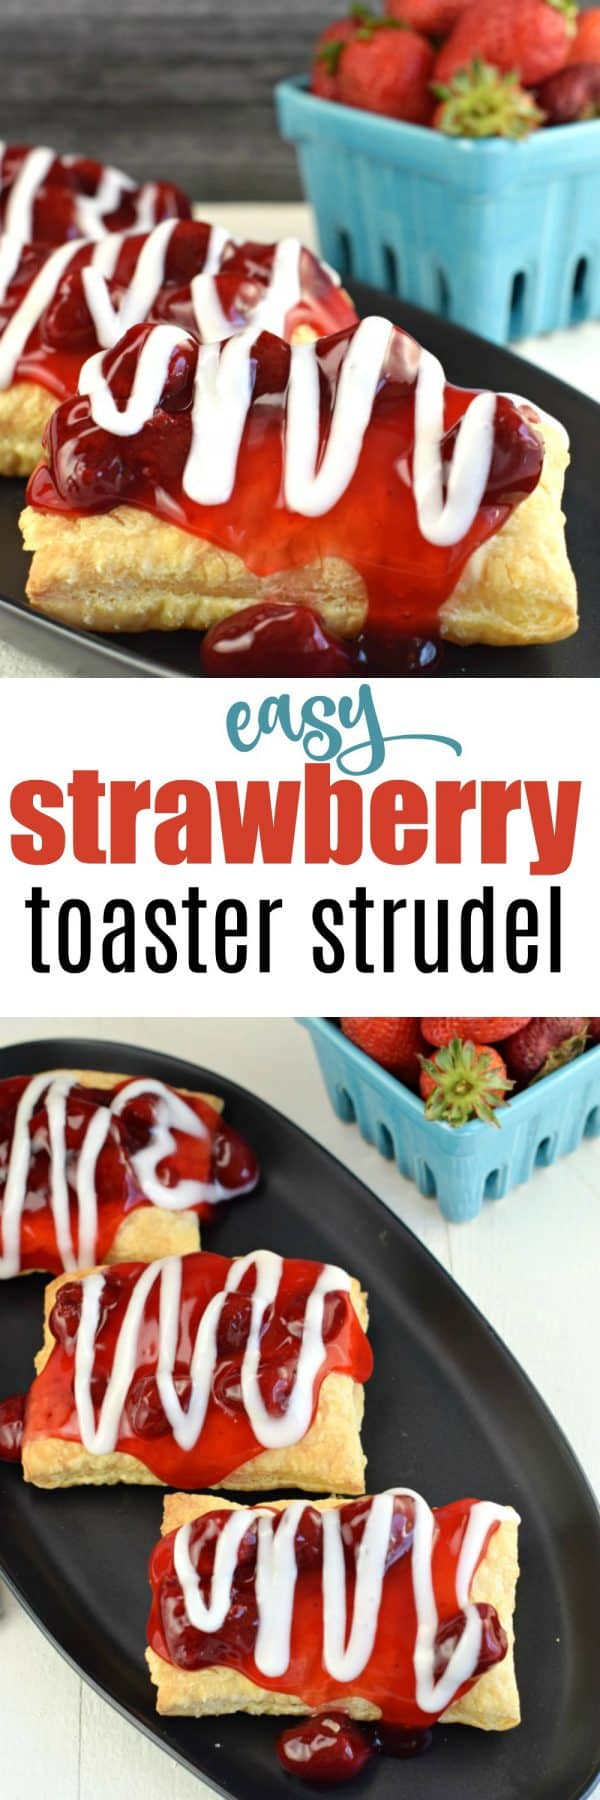 You're just minutes away from enjoying these delicious Easy Strawberry Strudel treats for breakfast or dessert!